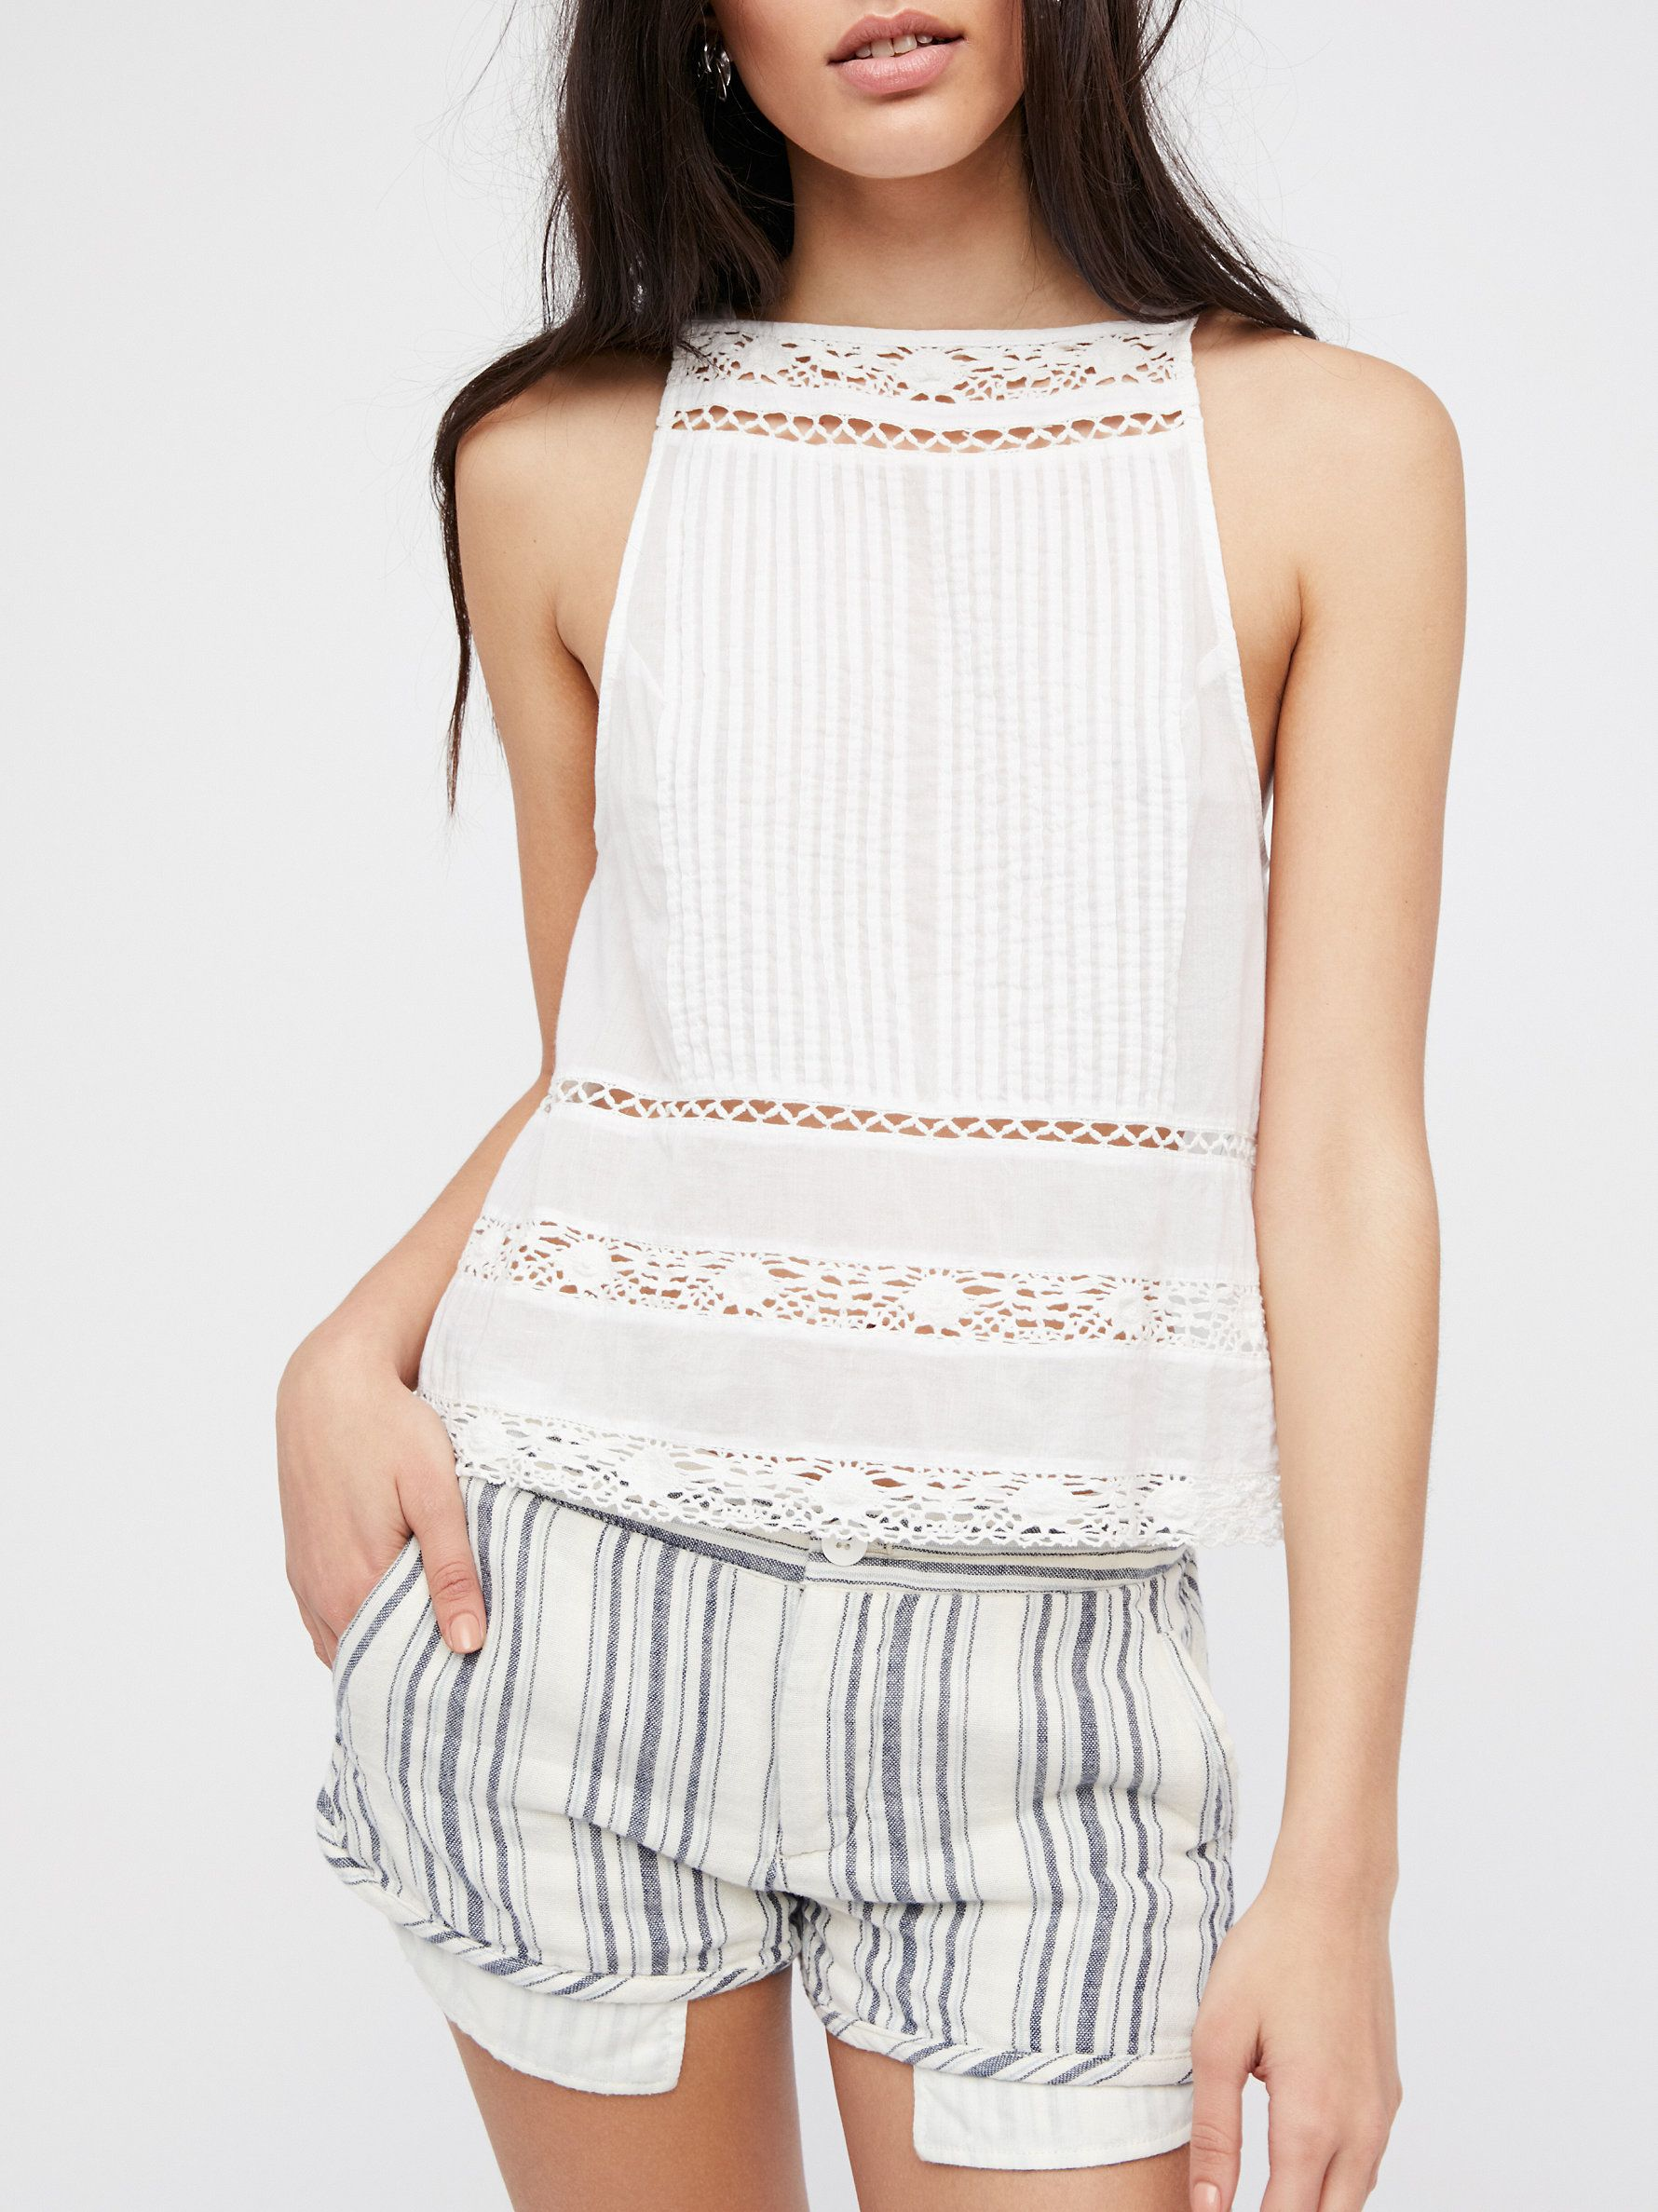 Night Moves Striped Short | Cute mid-rise cotton shorts with a striped print and a relaxed fit.    * Button fly and closure * Four pocket design * Pockets sneak out under hem for a too cool detail